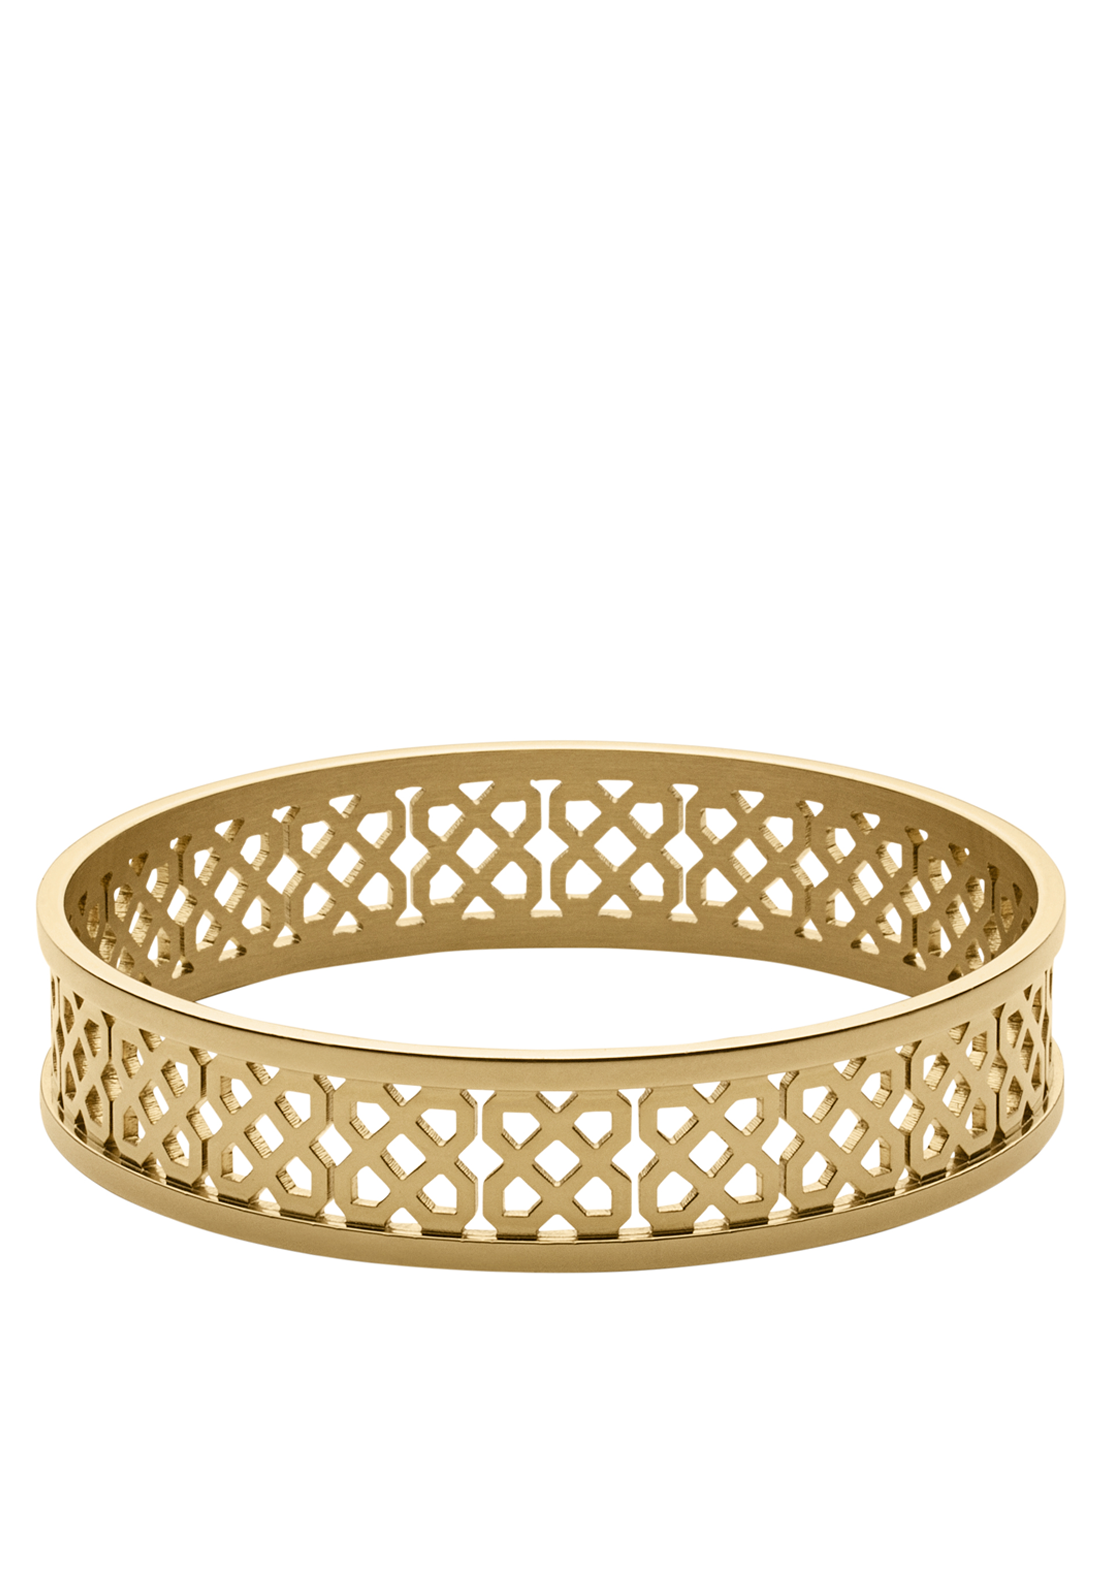 Dyrberg Kern Rinah Shiny Gold Plated Bangle, Gold